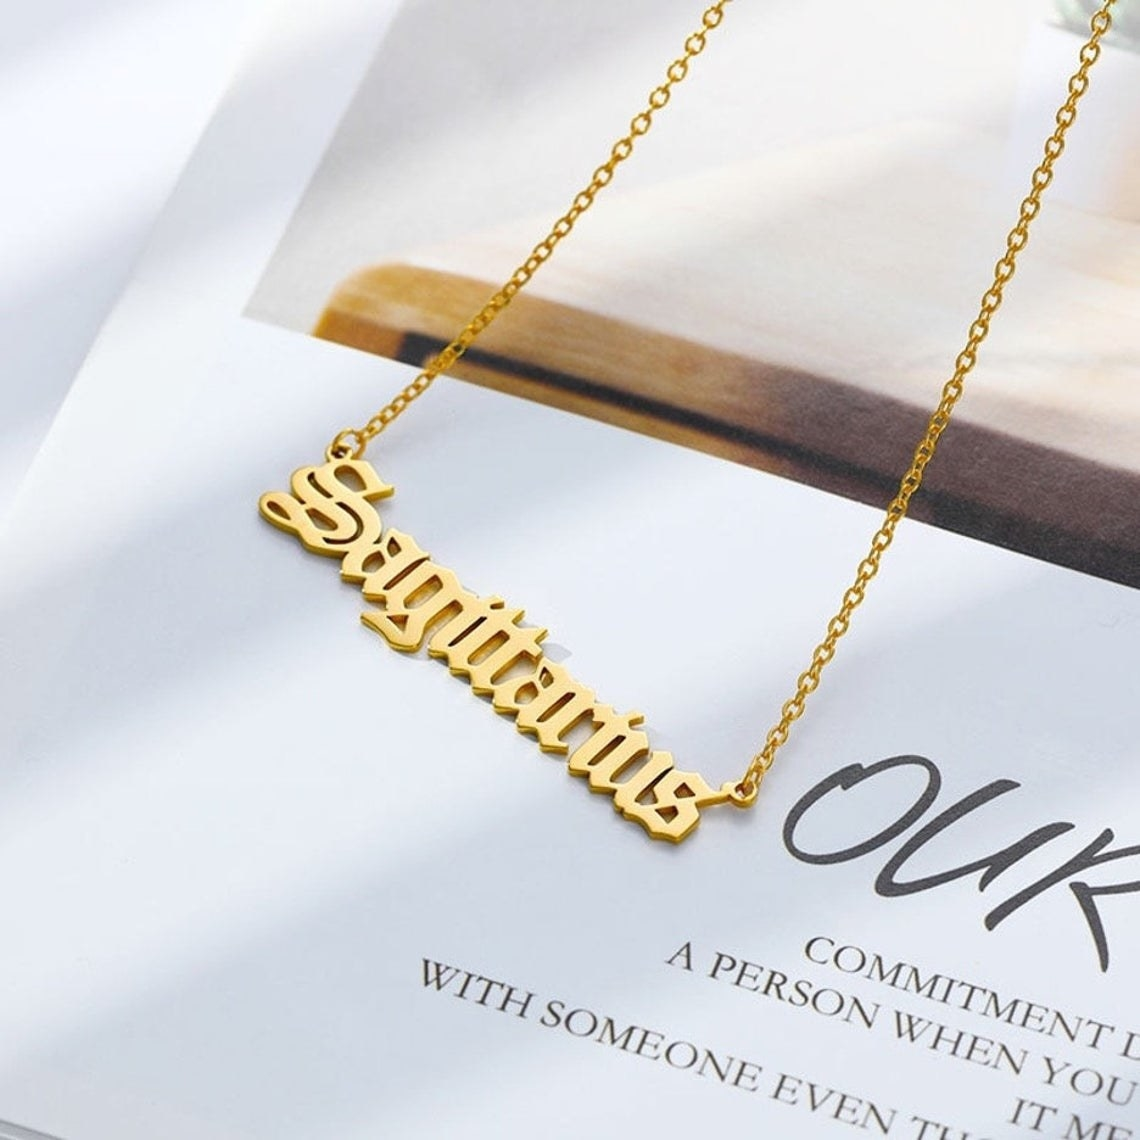 The nameplate necklace on top of a book